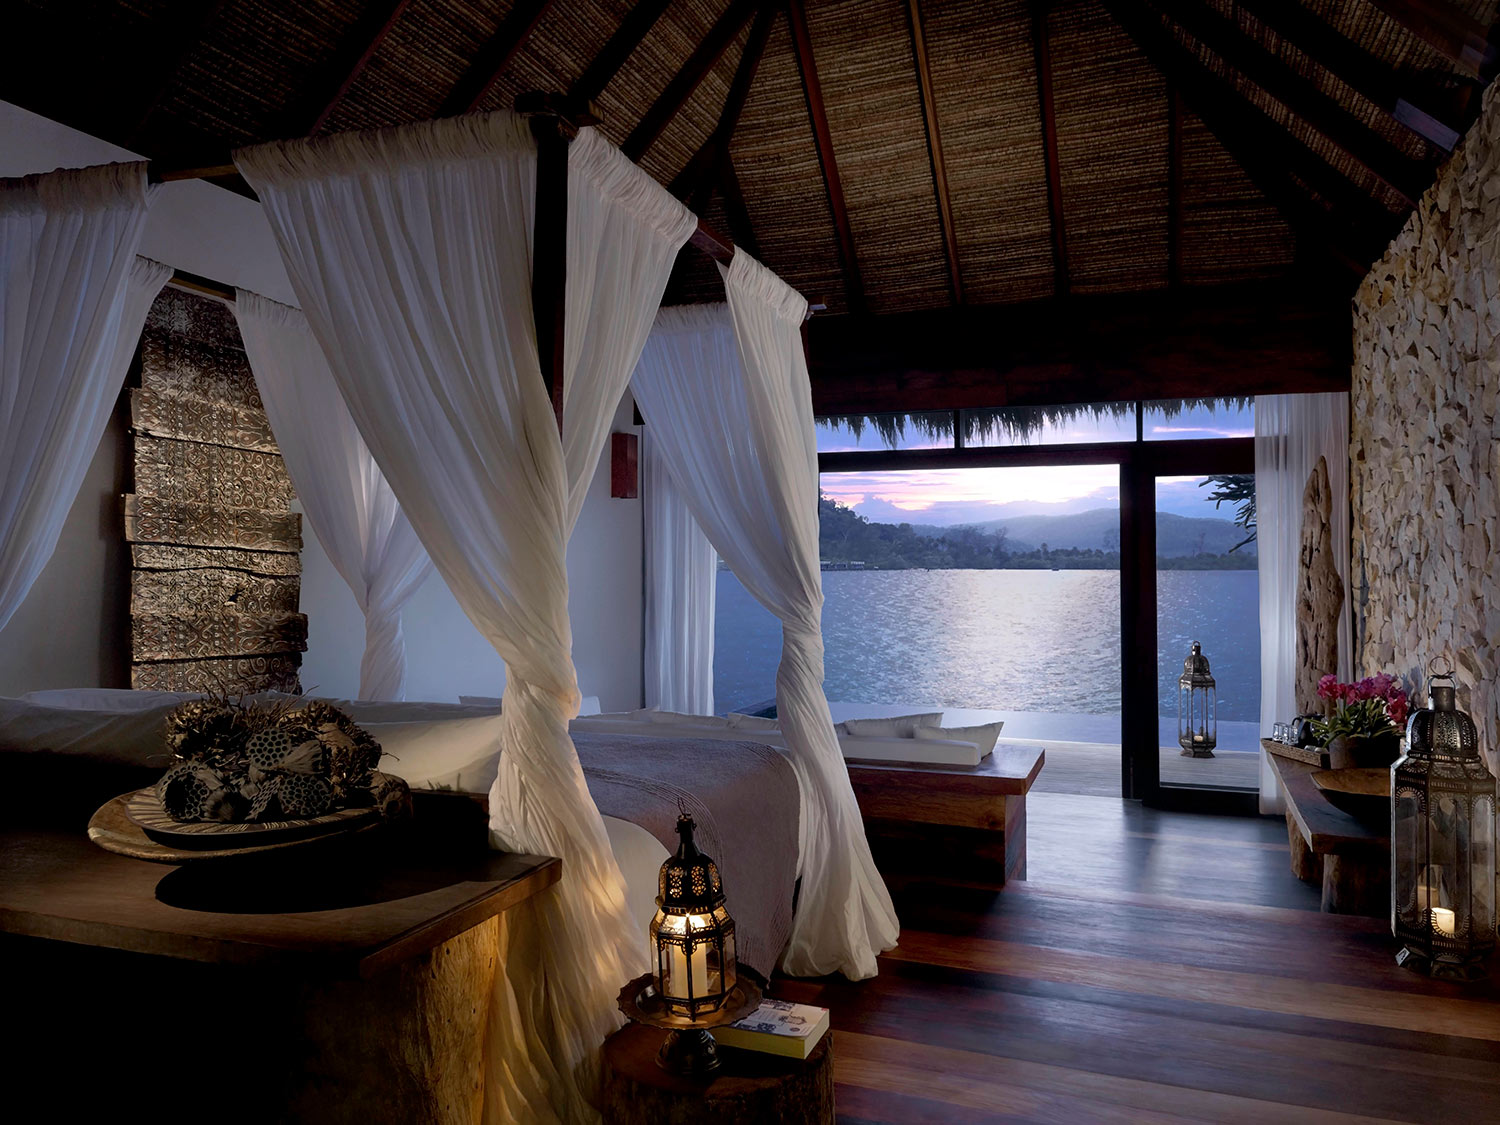 Song Saa Private Island - Koh Rong Archipelago, Cambodia